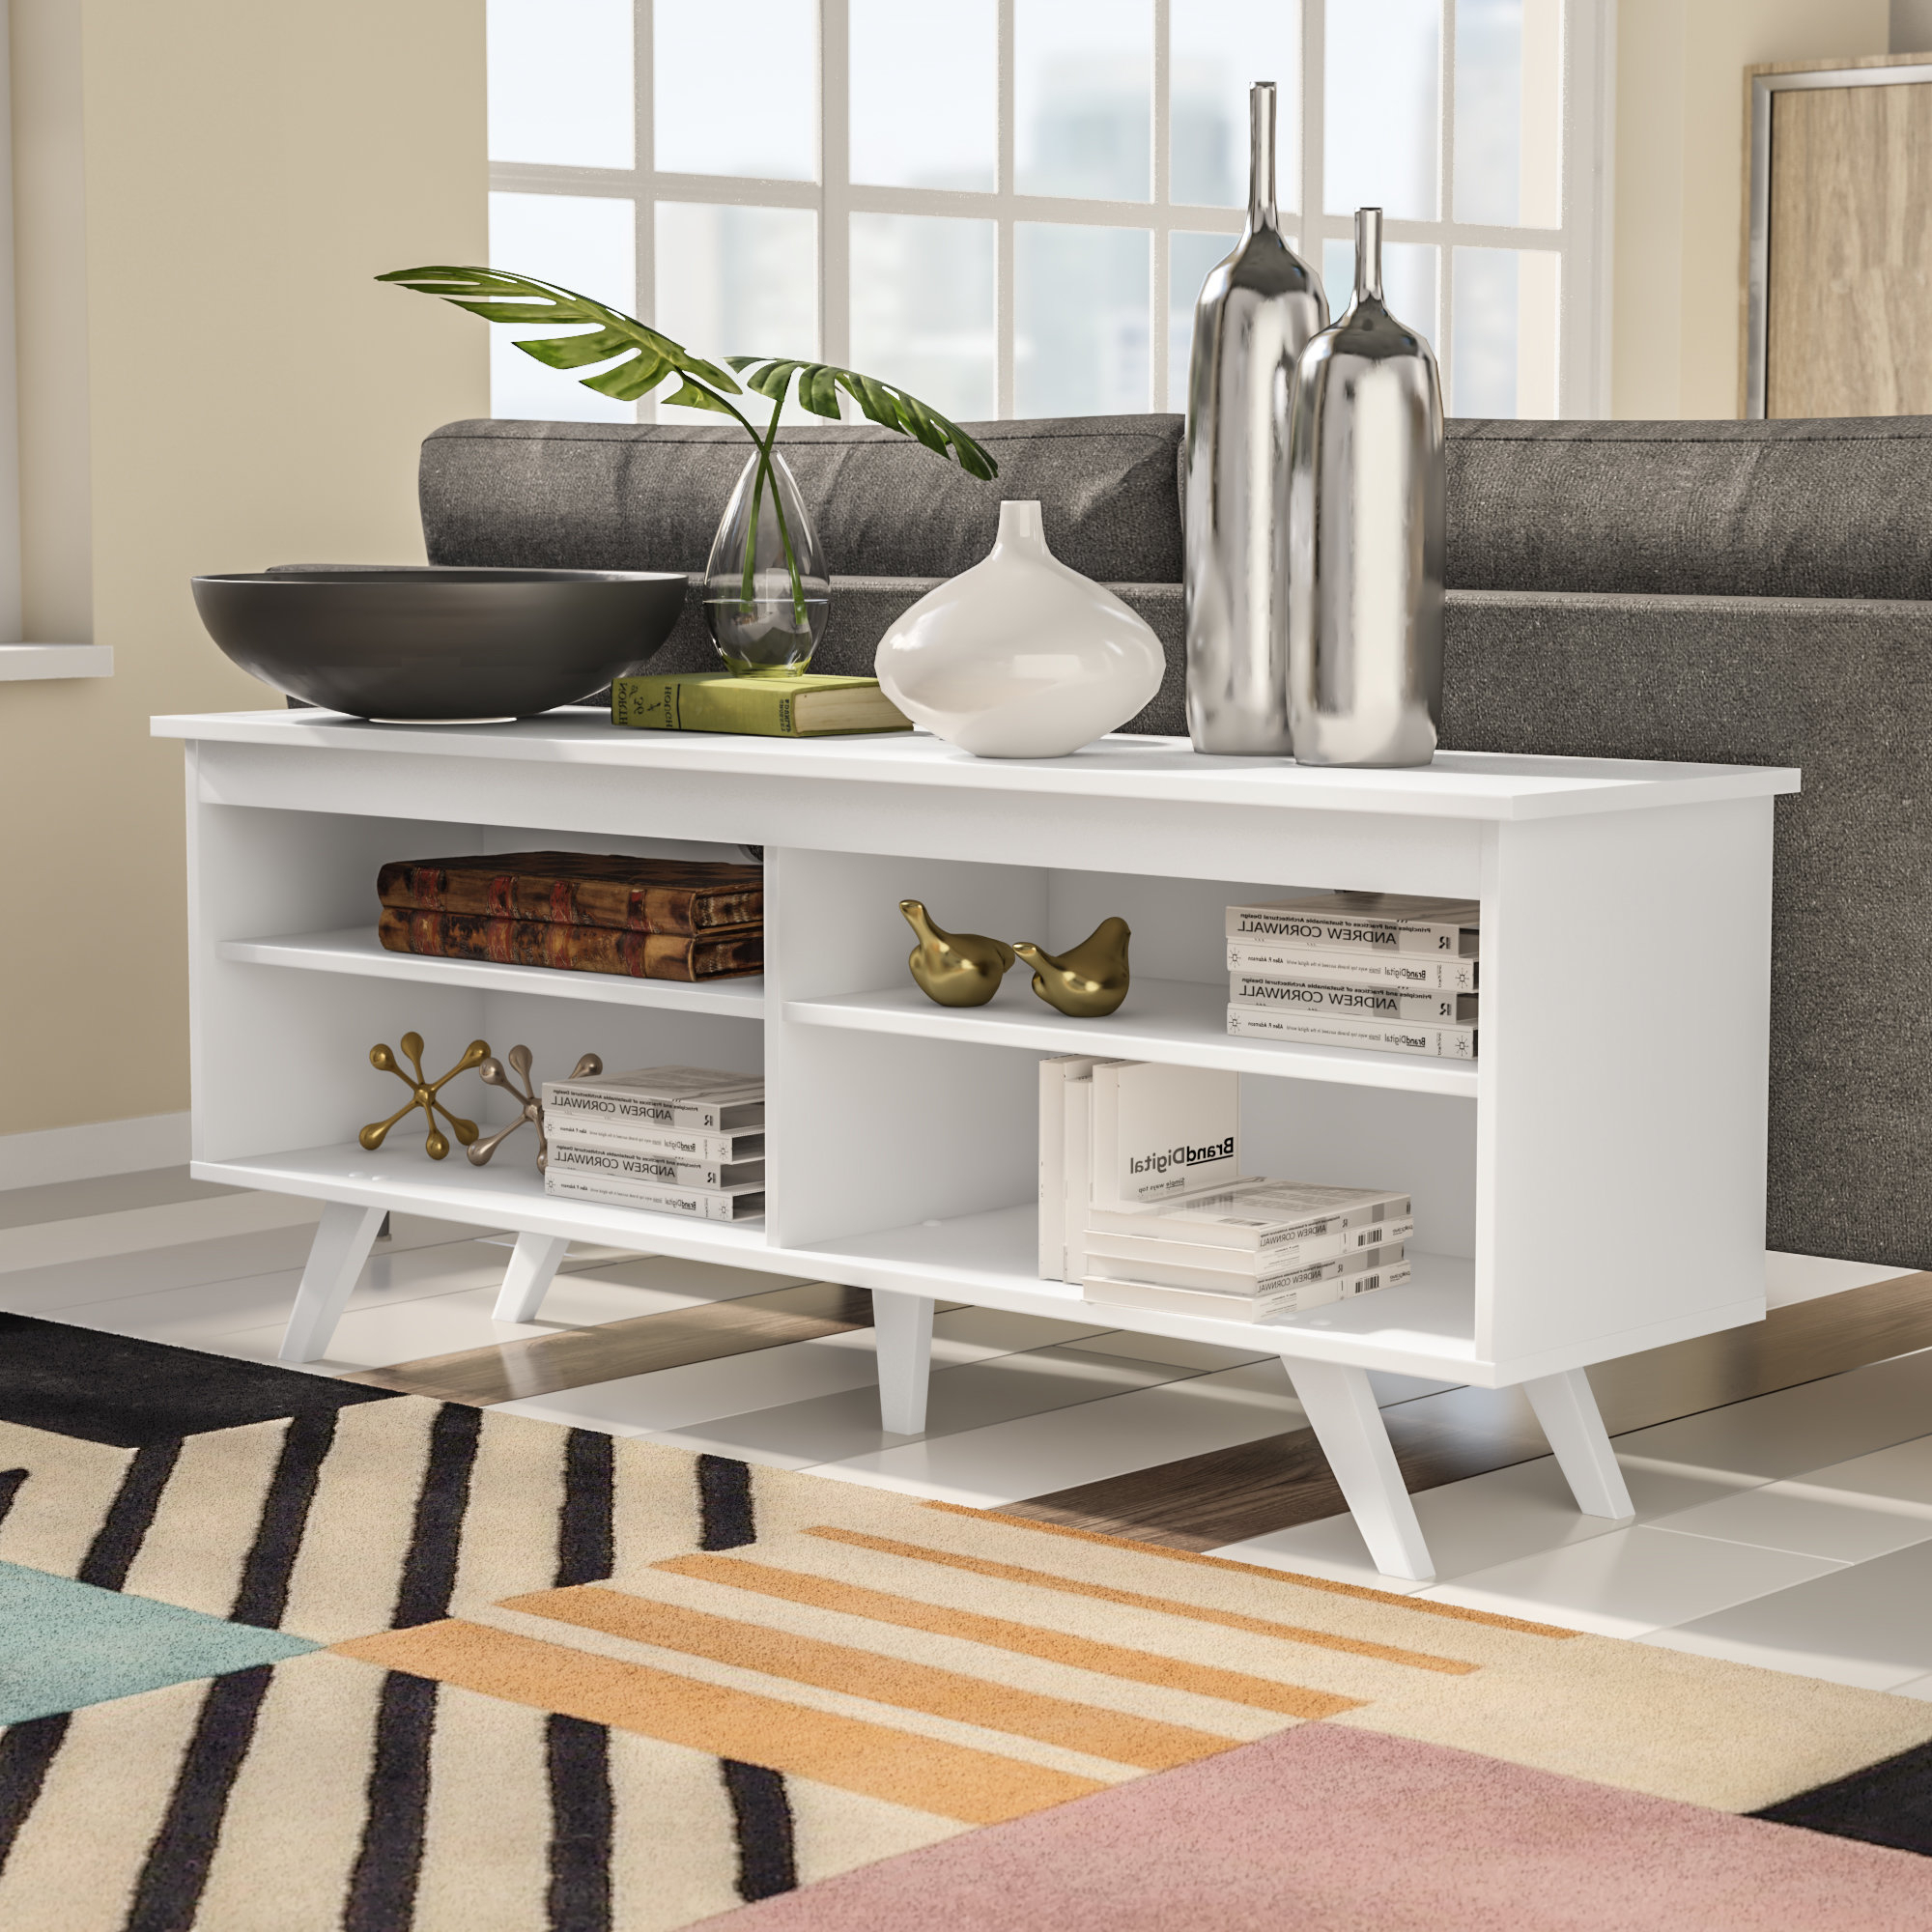 Wayfair Intended For Most Recent Ducar 74 Inch Tv Stands (View 19 of 20)